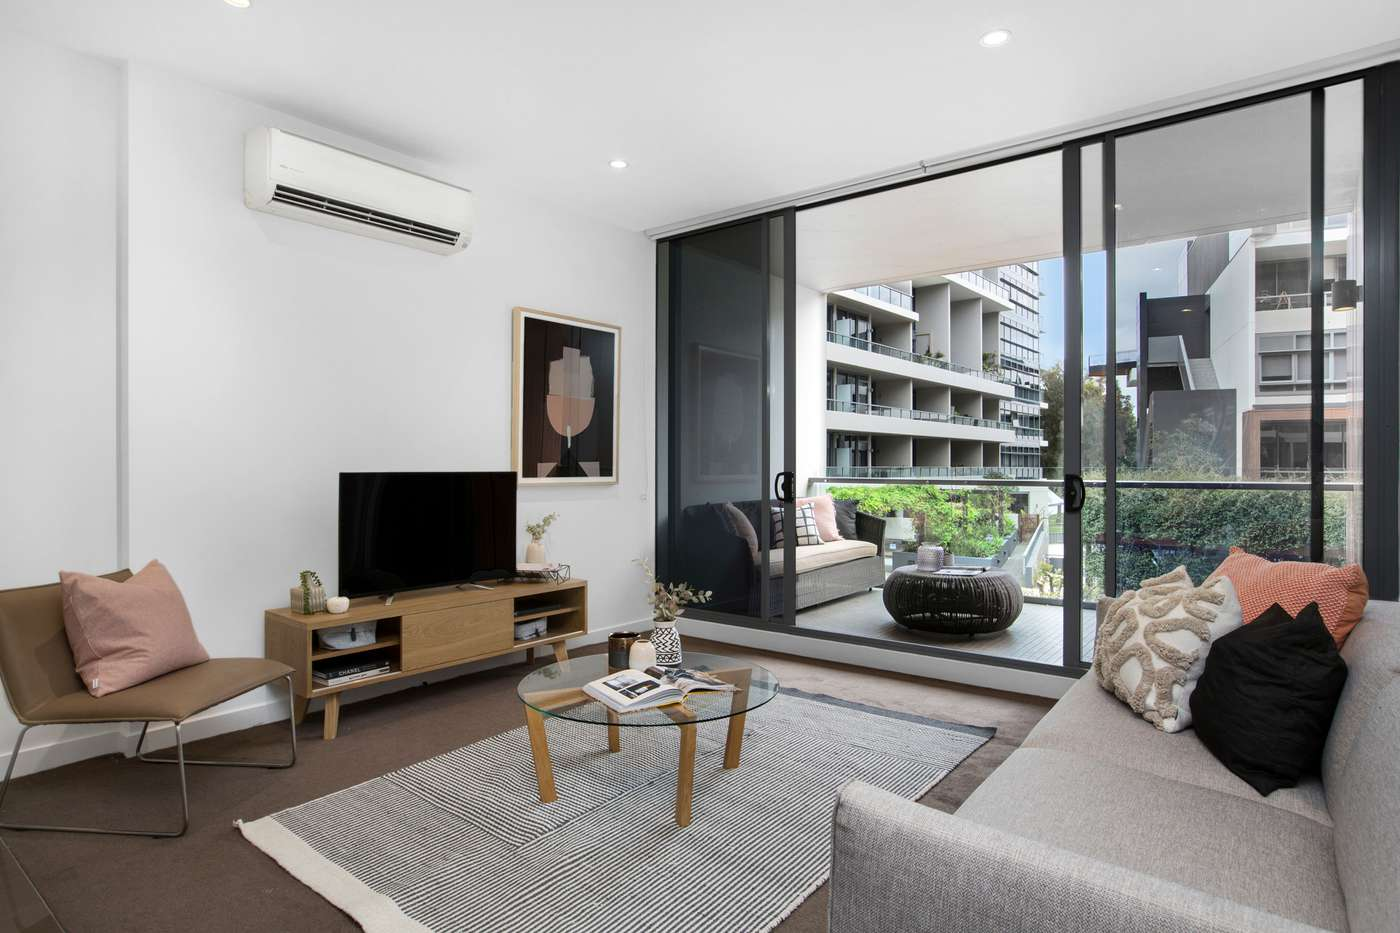 Main view of Homely apartment listing, 26/6 Archibald Avenue, Waterloo, NSW 2017